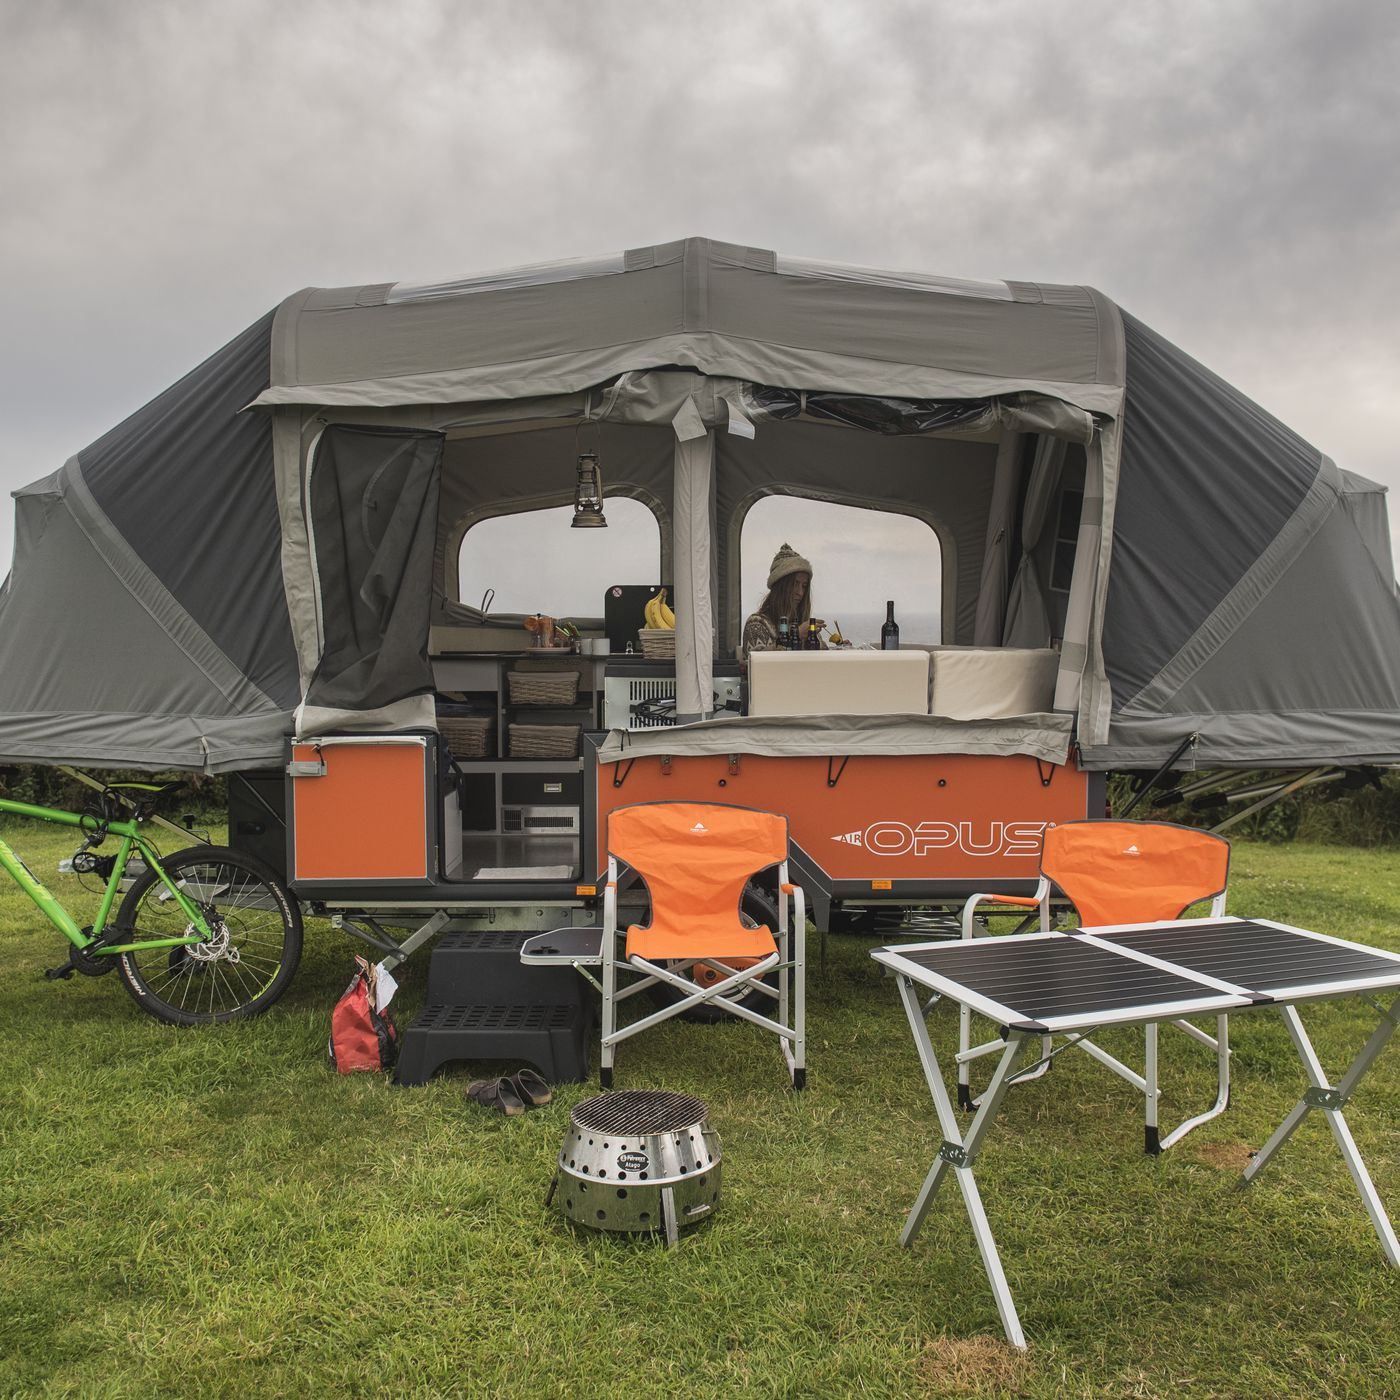 Air Opus Camping Trailer Inflates Into A Tent In Just 90 Seconds Curbed